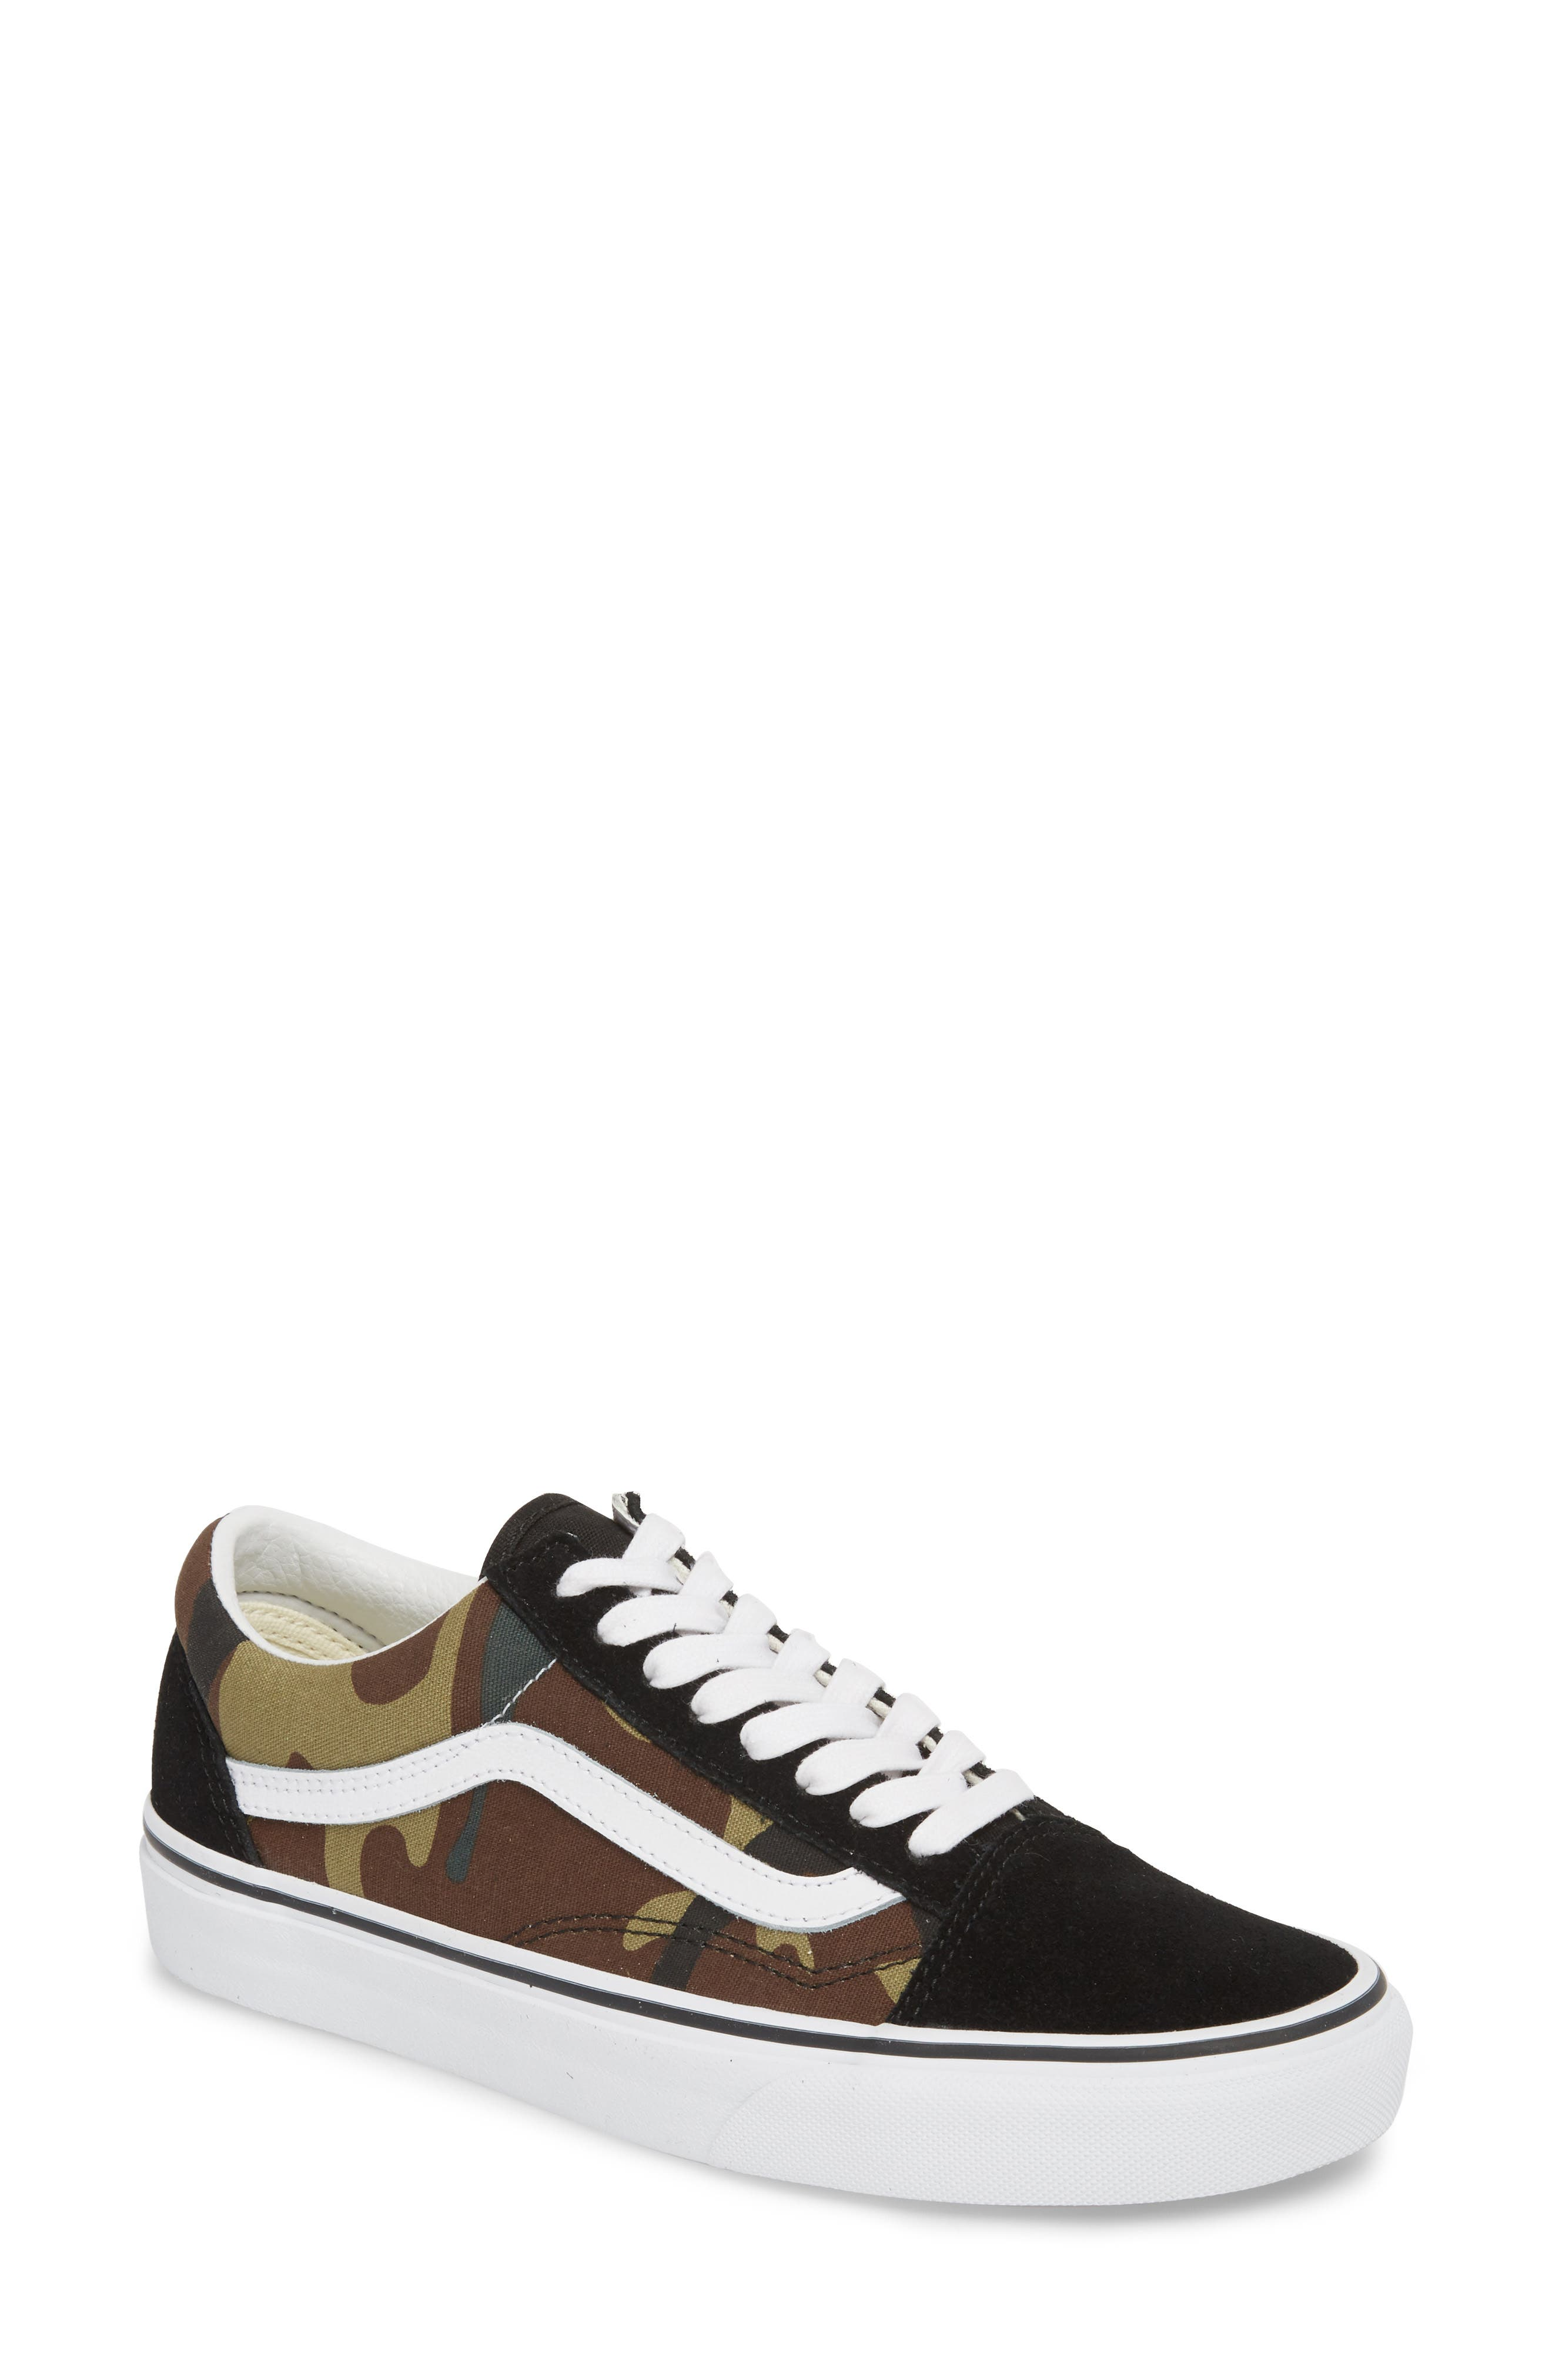 Old Skool Sneaker by Vans